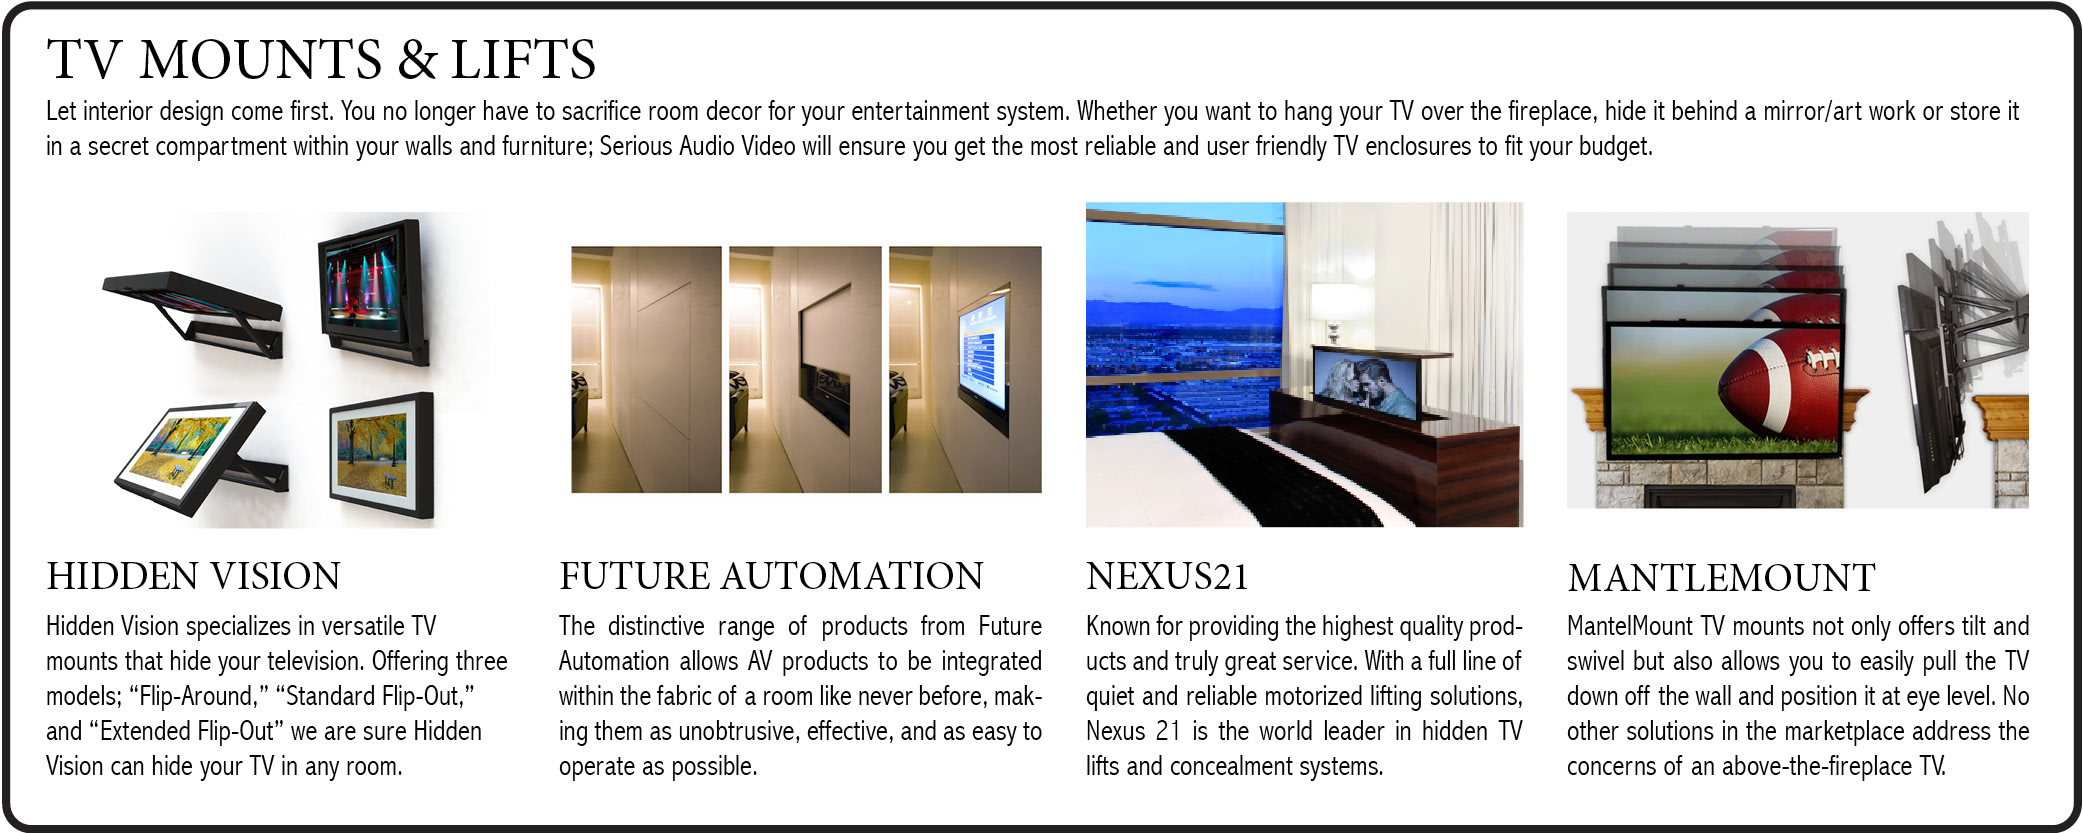 tv-mounts-motorized-lifts-hidden-vision-future-automation-nexus21-mantlemounts-serious-audio-video-nj